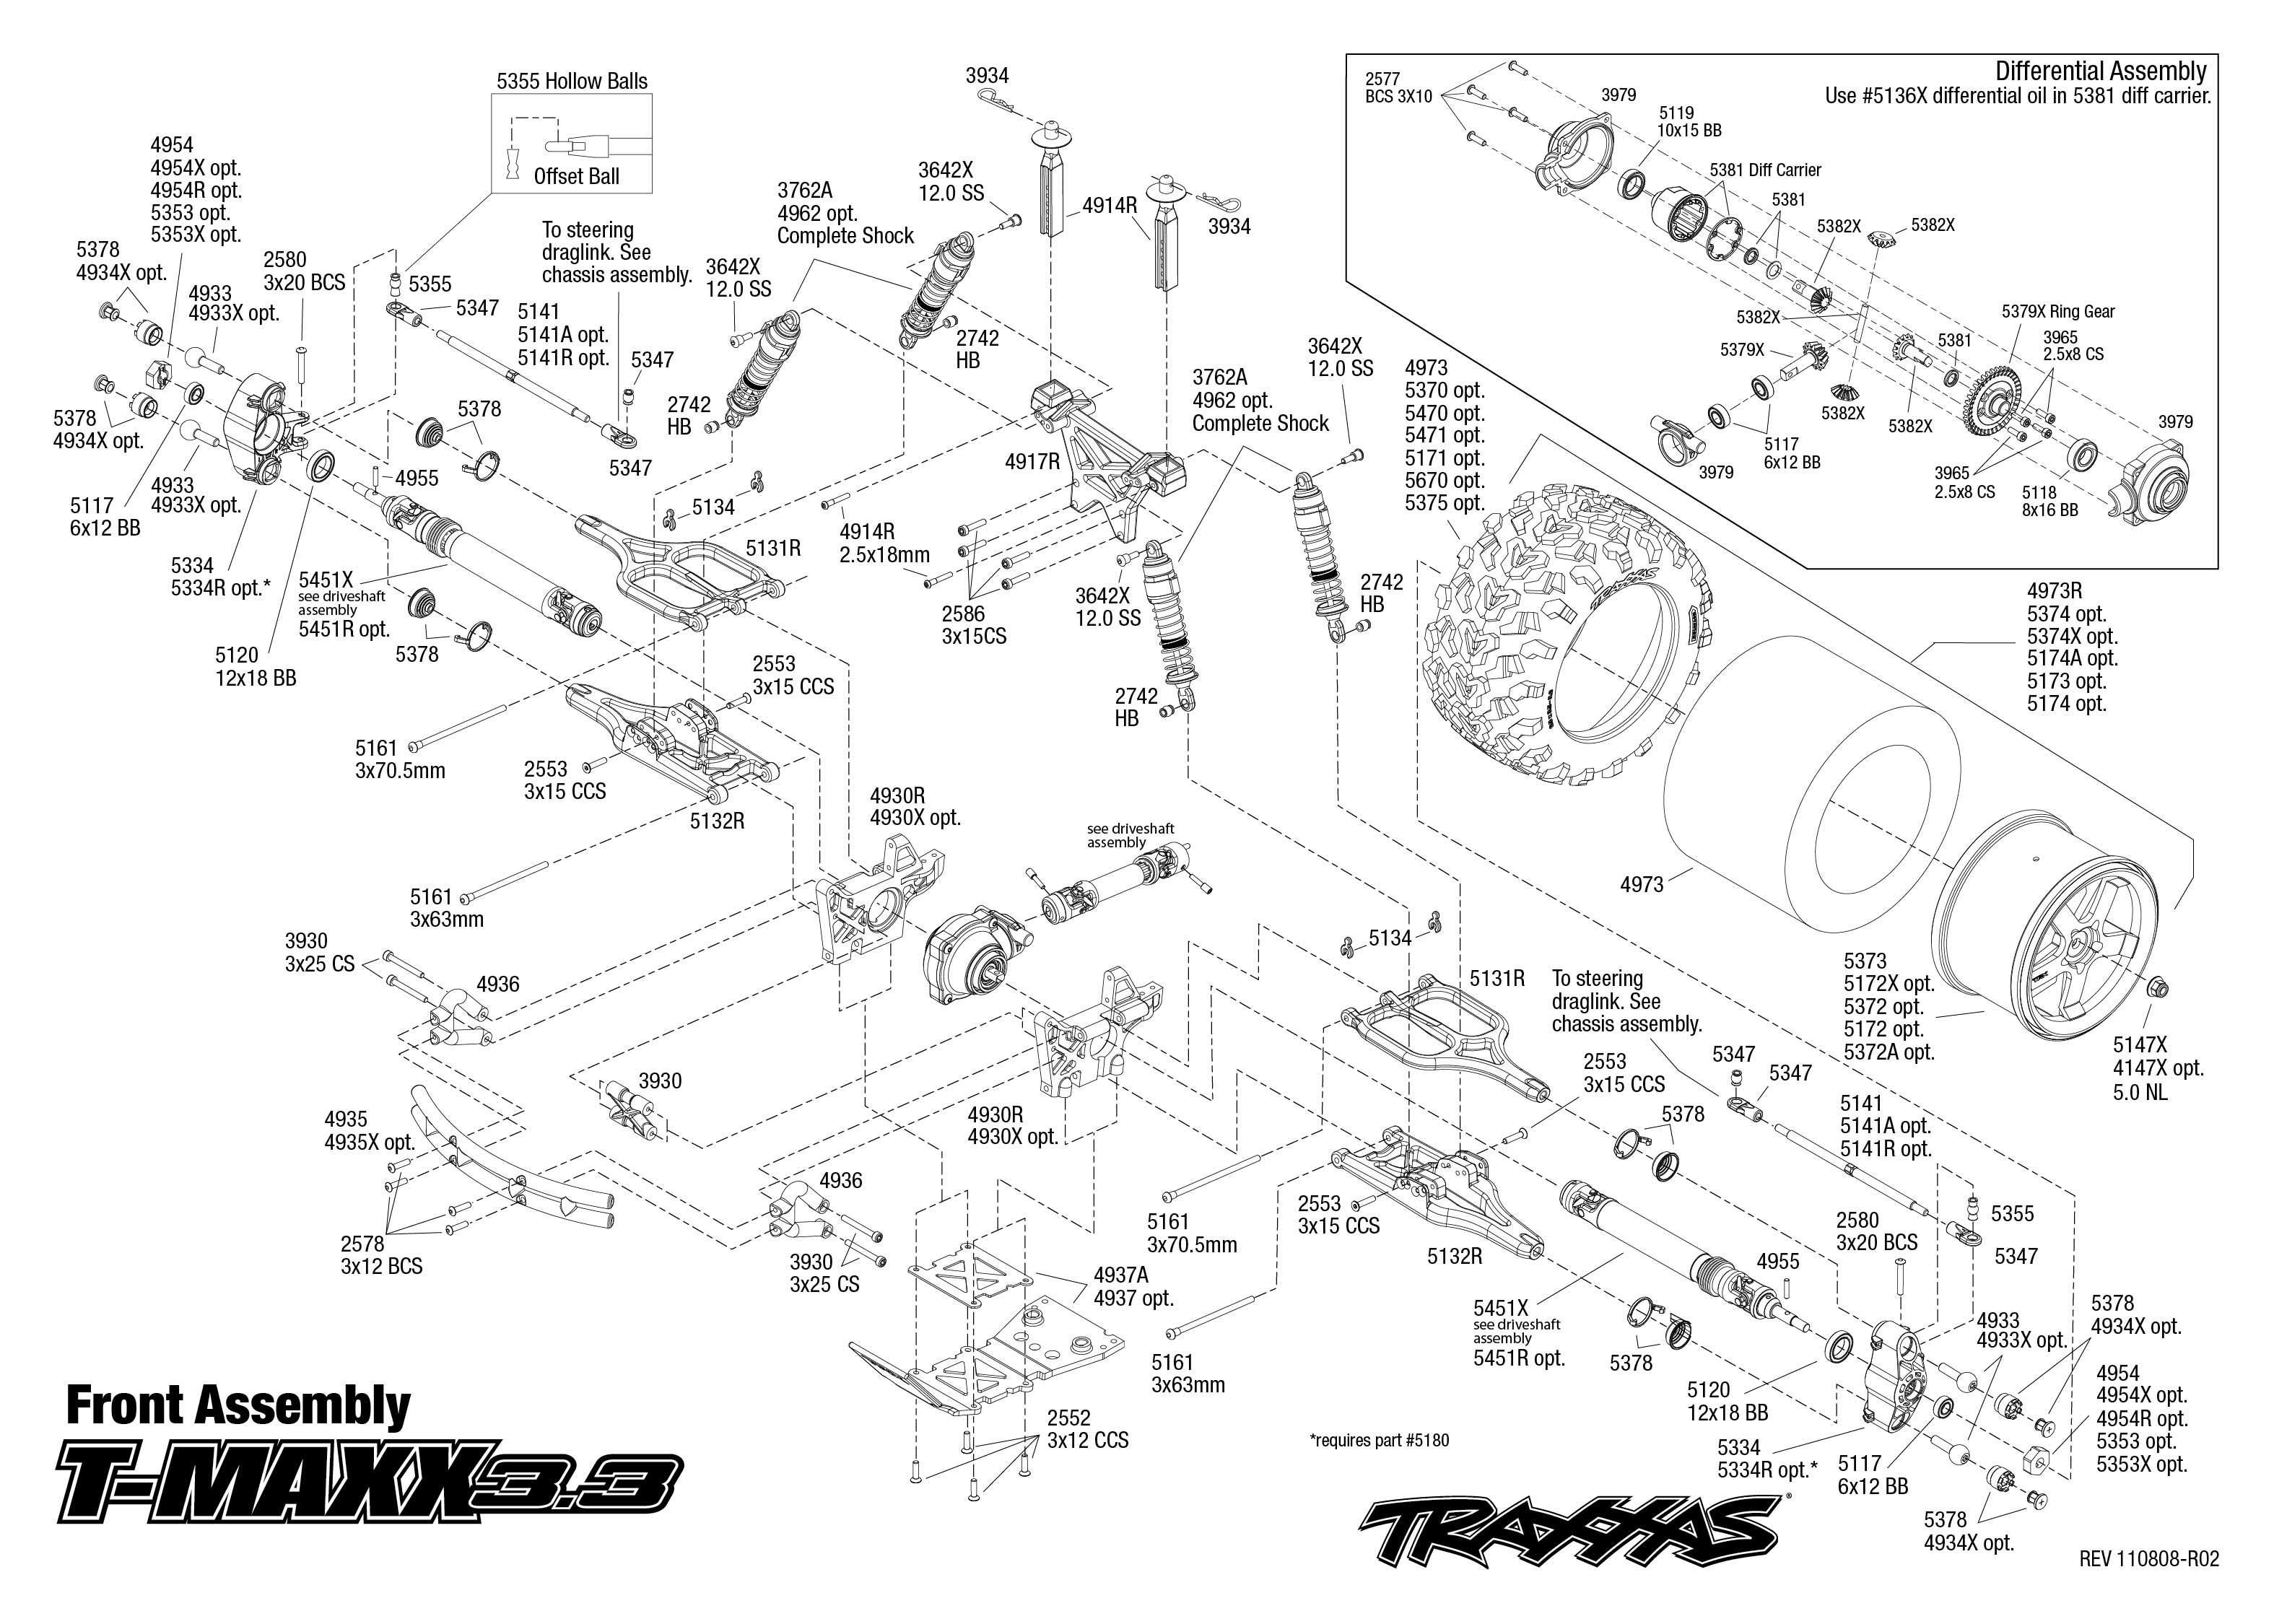 T Maxx Diagram Data Wiring Traxxas Stampede Vxl Parts Monster Jam Replicas 3602 Exploded View Nitro 1 10 Front Part Astra Truck